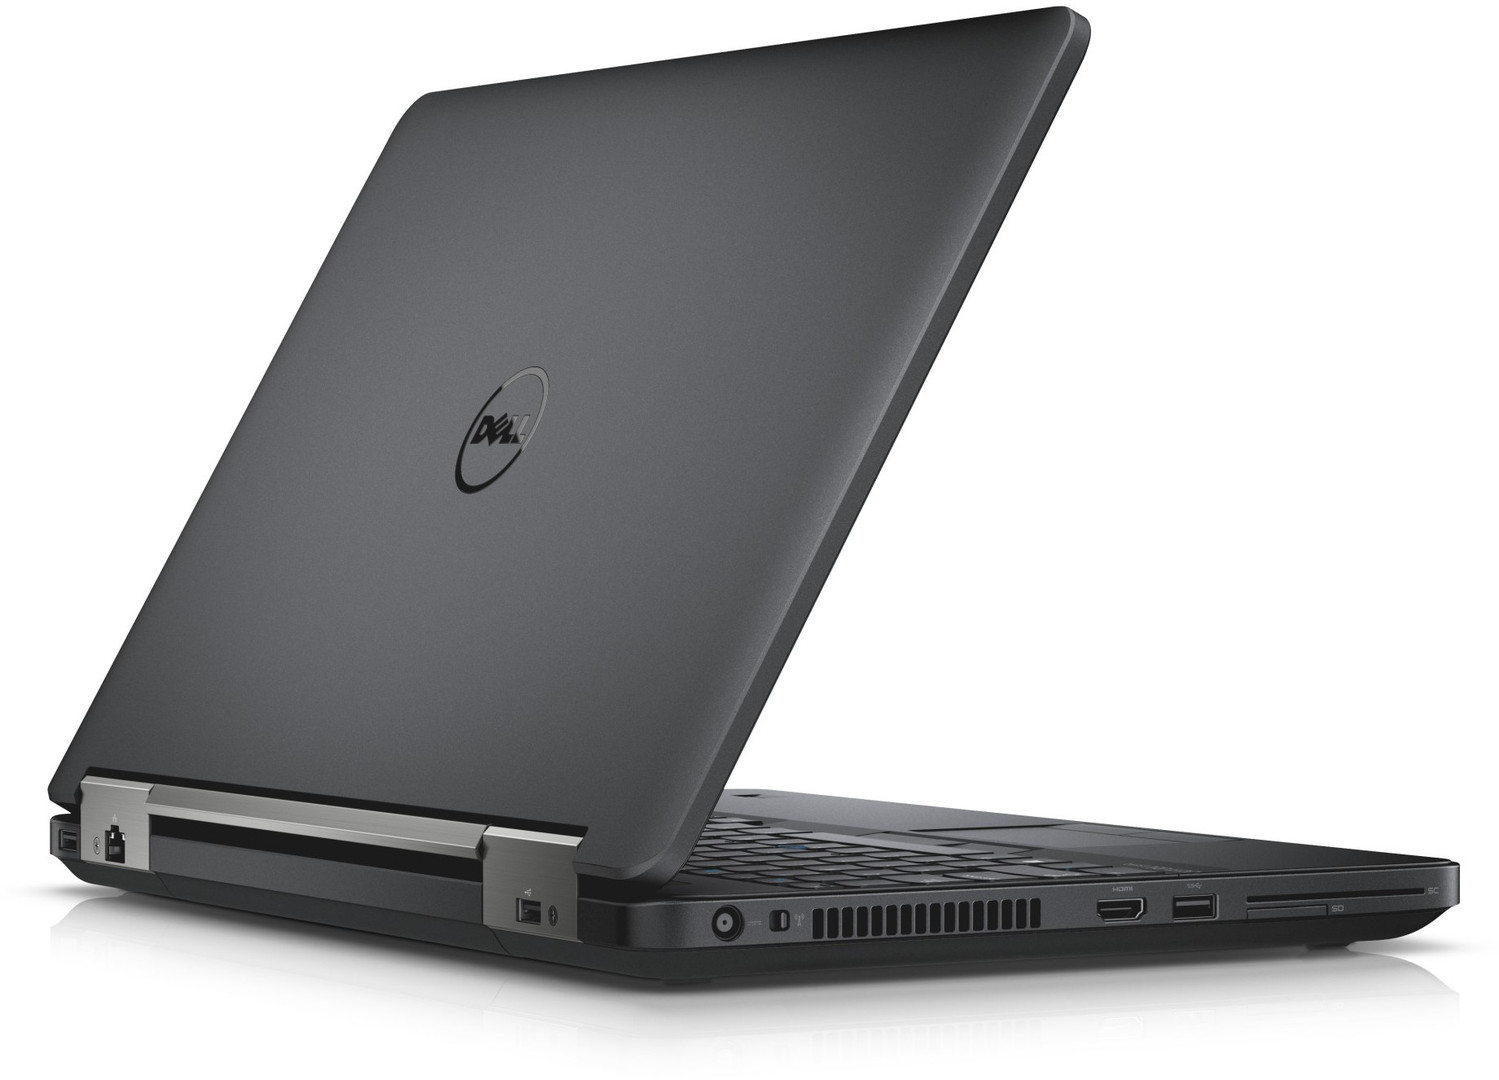 List hàng Laptop cao cấp Macbook-SONY-DELL-HP-ASUS-LENOVO-ACER-SAMSUNG ship từ USA - 10